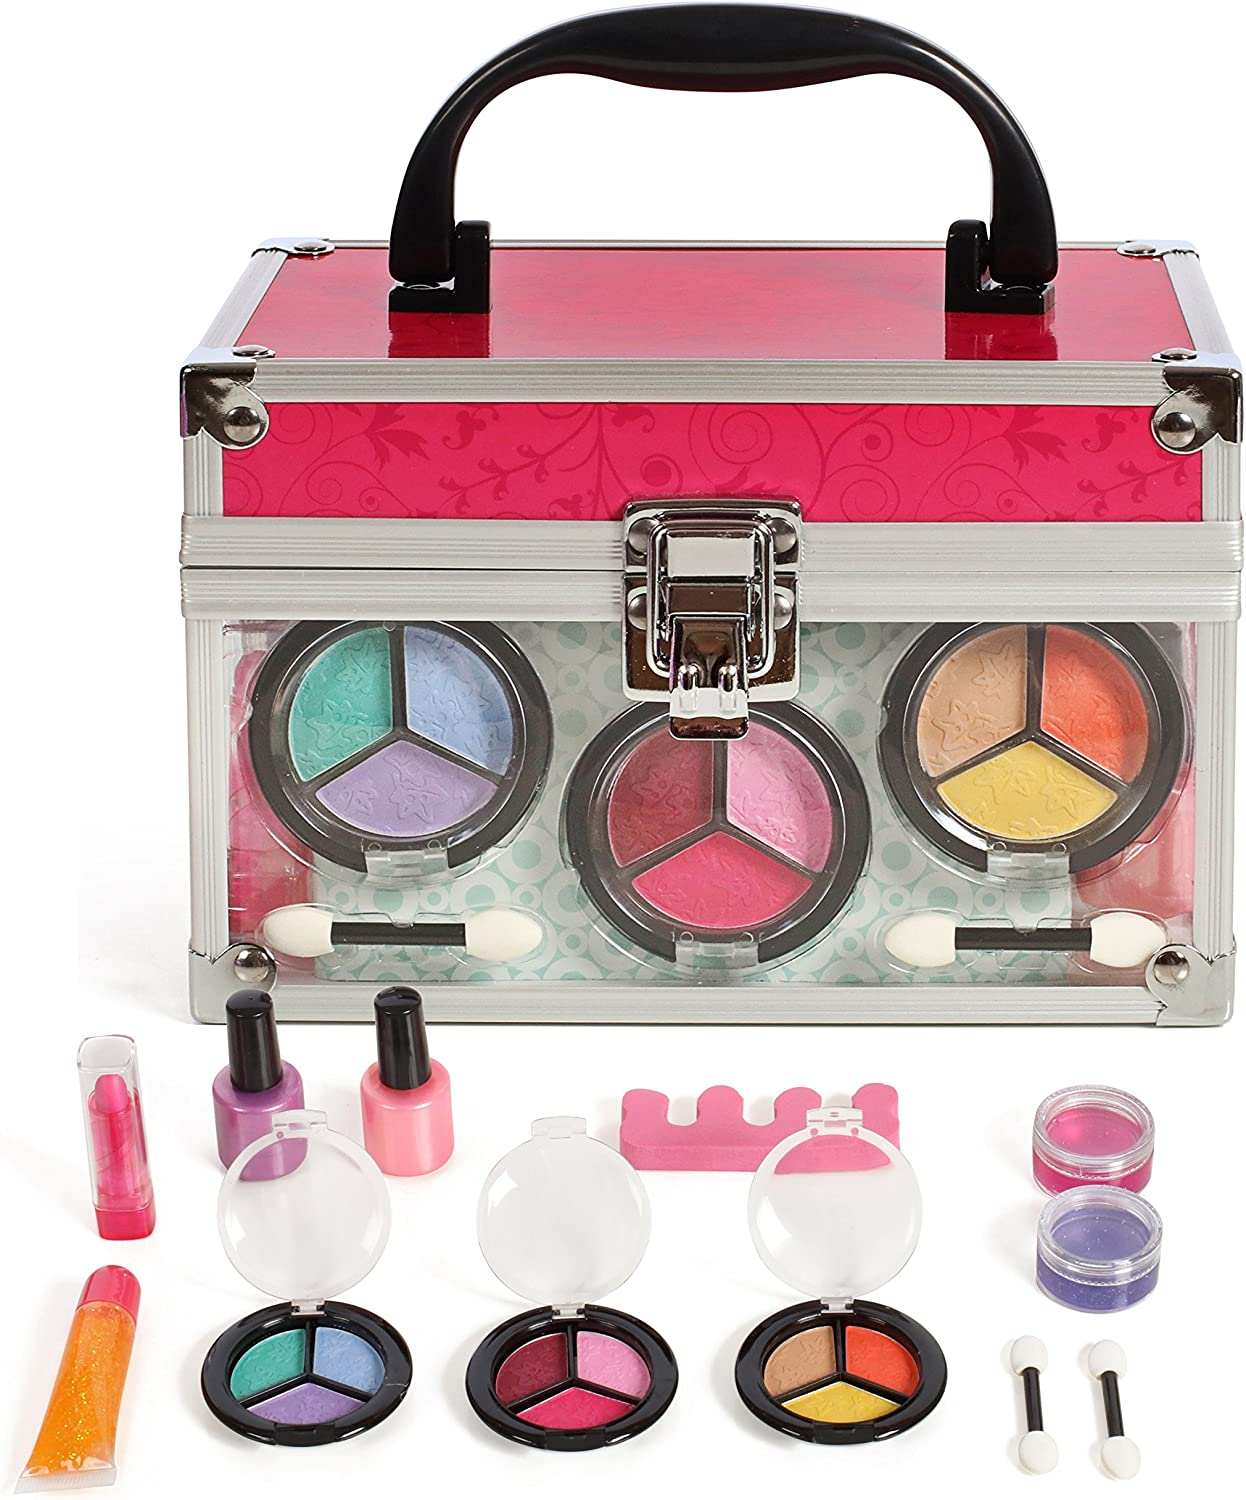 IQ Toys Pretend Play Makeup Beauty Princess Cosmetic Set with Mirror and Clear Sturdy Case for Kids Girls